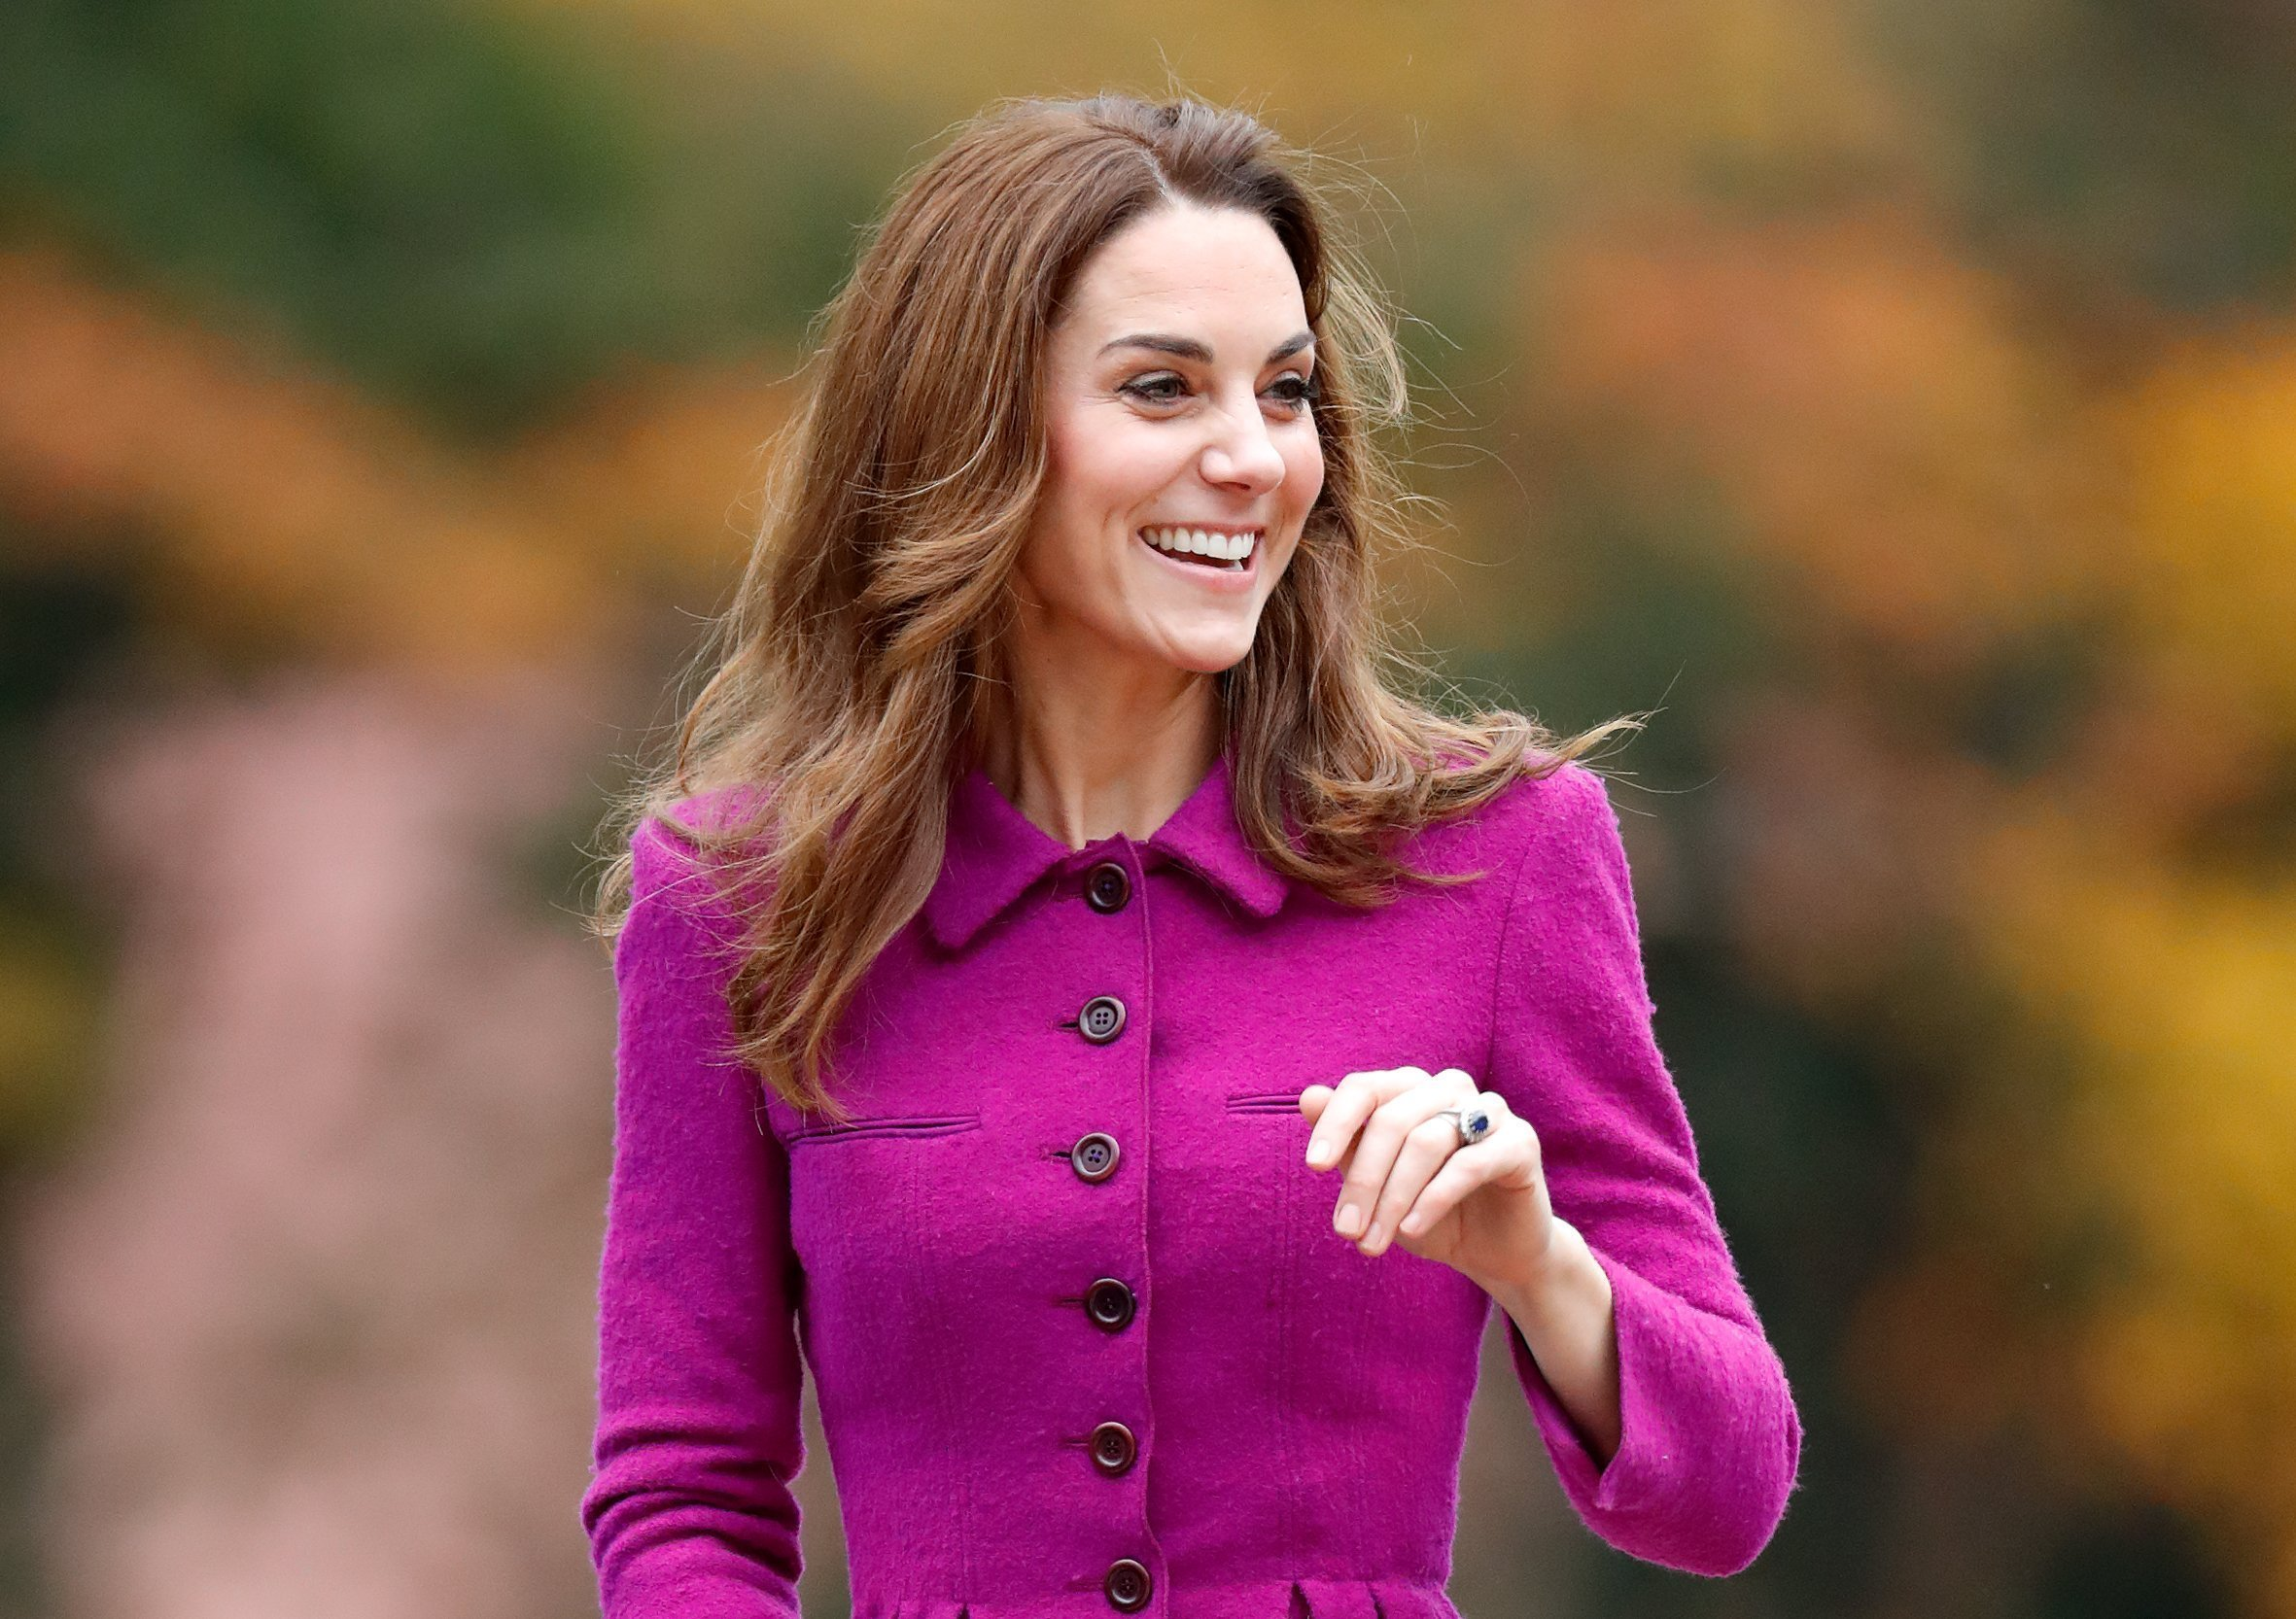 Kate Middleton attends the opening of a Children's Hospice in London, England on November 15, 2019 | Photo: Getty Images